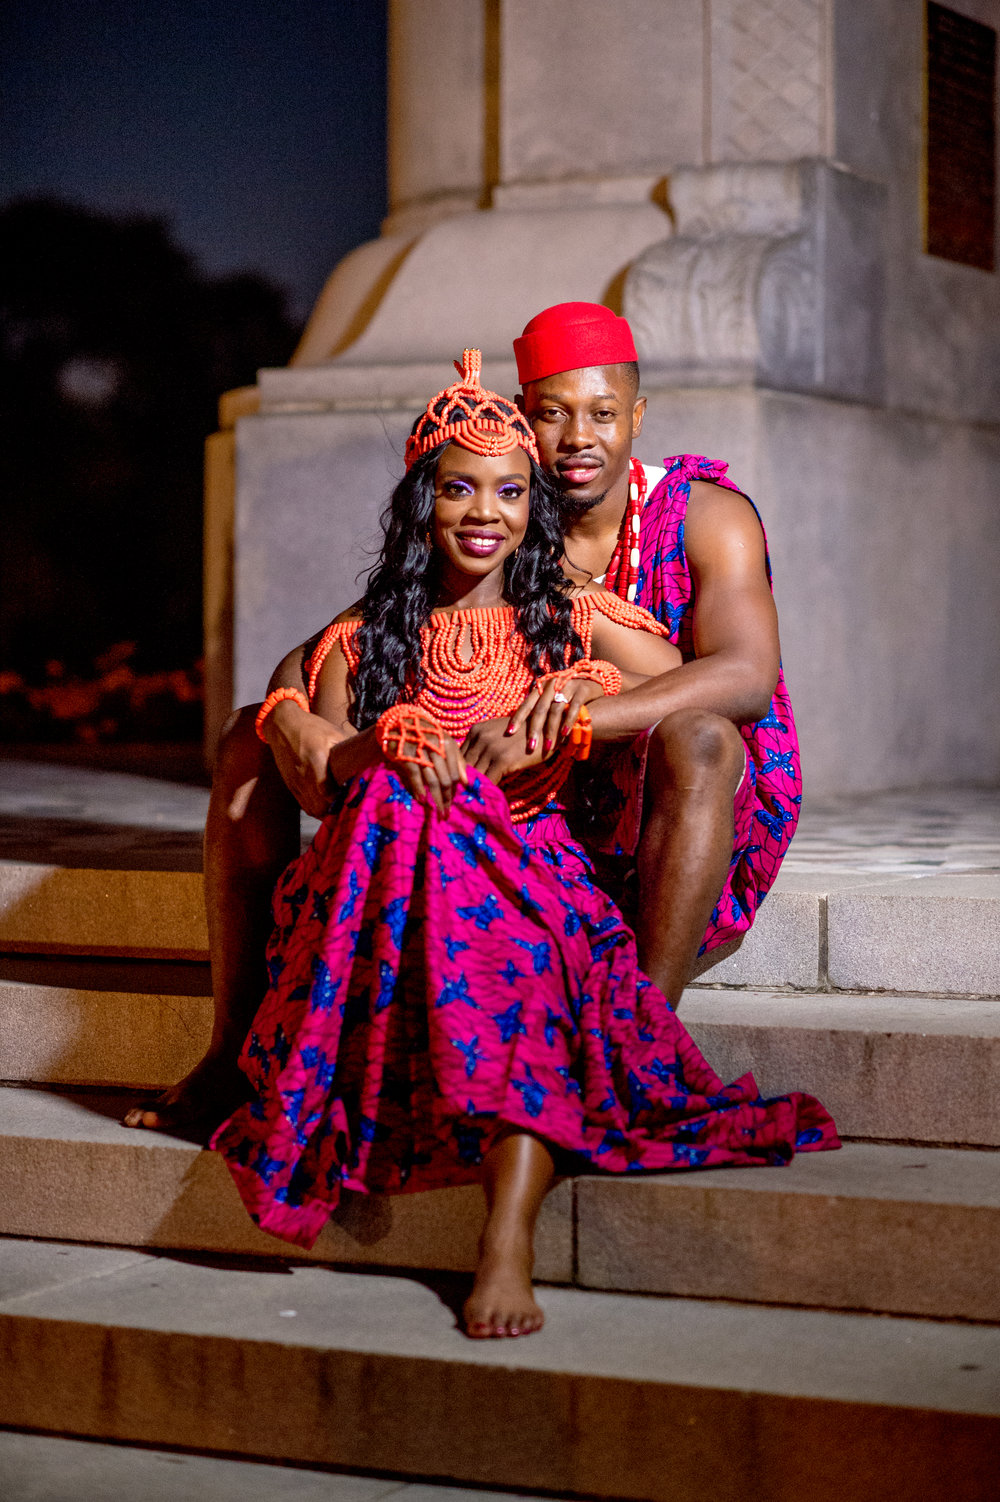 Notice the beaded details on her head, her neck, shoulders and hands. These coral beads she chose turned her into an Igbo princess and I love it! Nwabueze then took it a few steps further by adding the Red hat and beads as well.